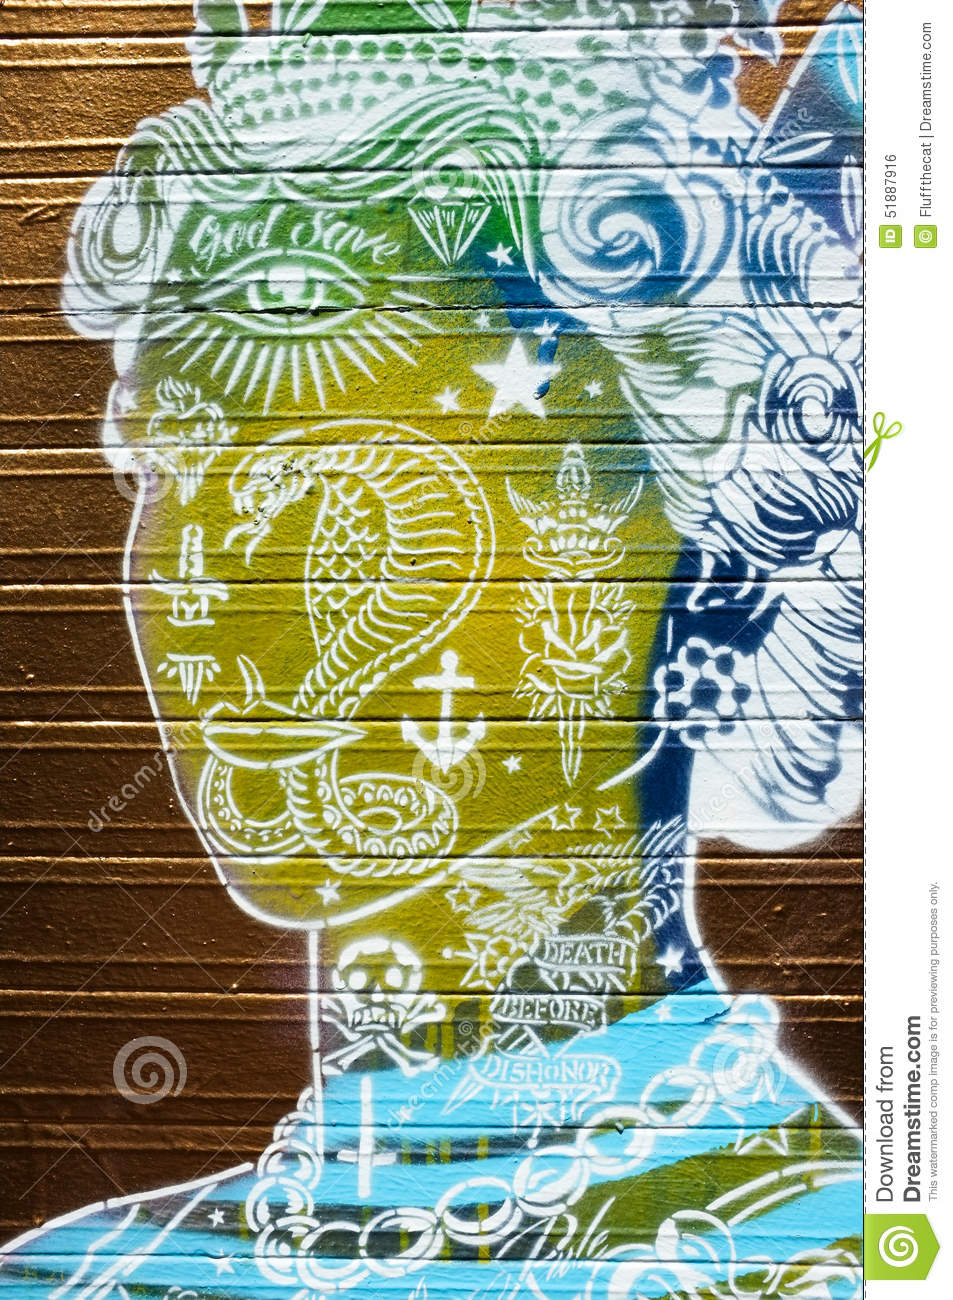 Green And Yellow Queens Head Graffiti Editorial Photo - Image of ...